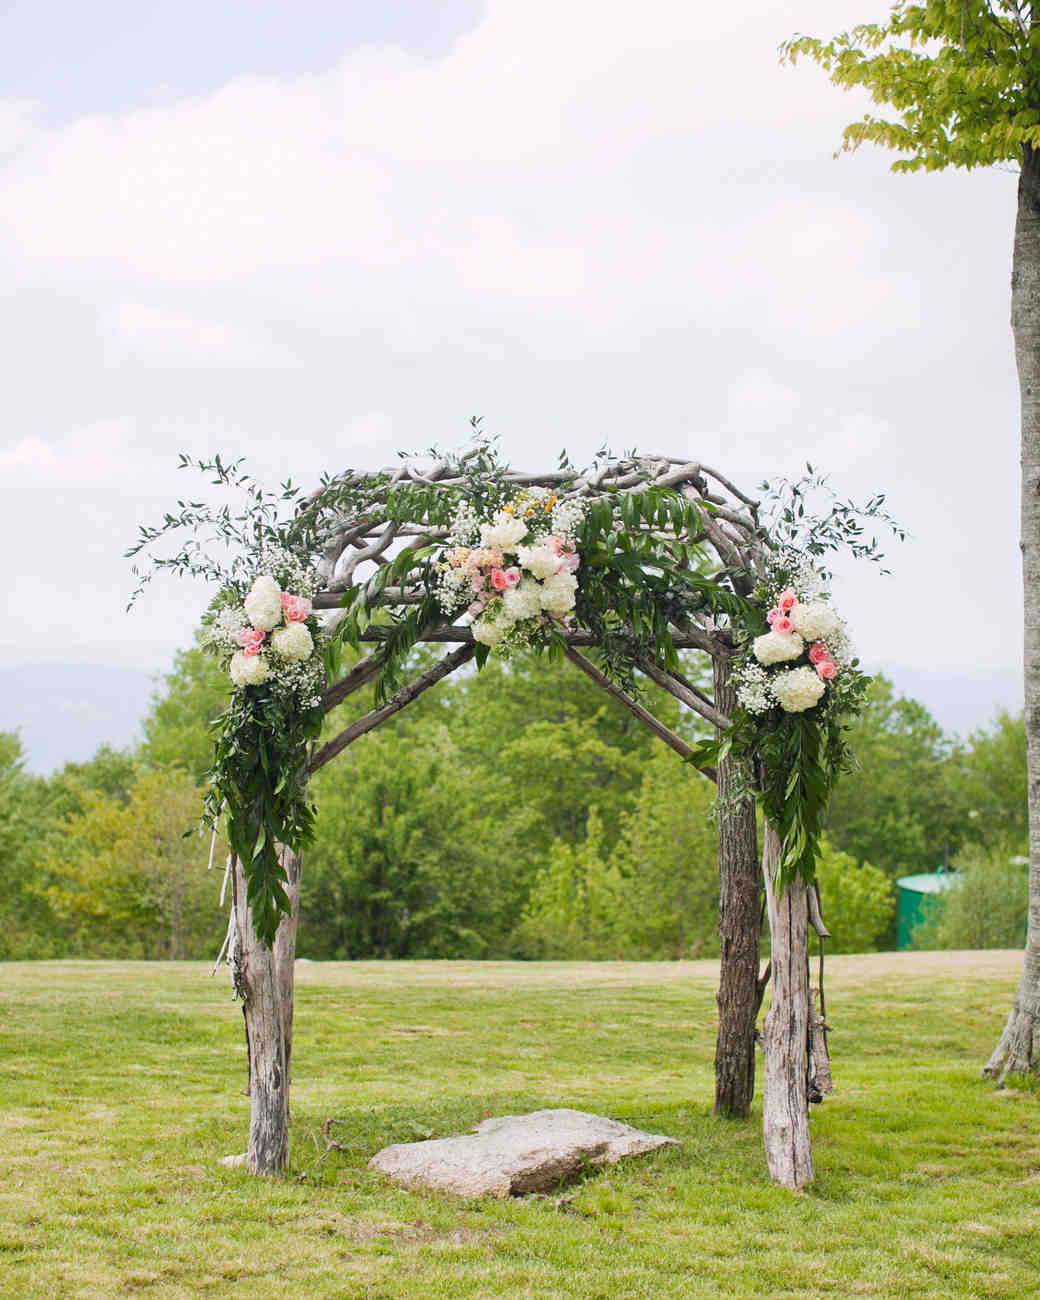 Rustic Outdoor Wedding Arches For Weddings: 59 Wedding Arches That Will Instantly Upgrade Your